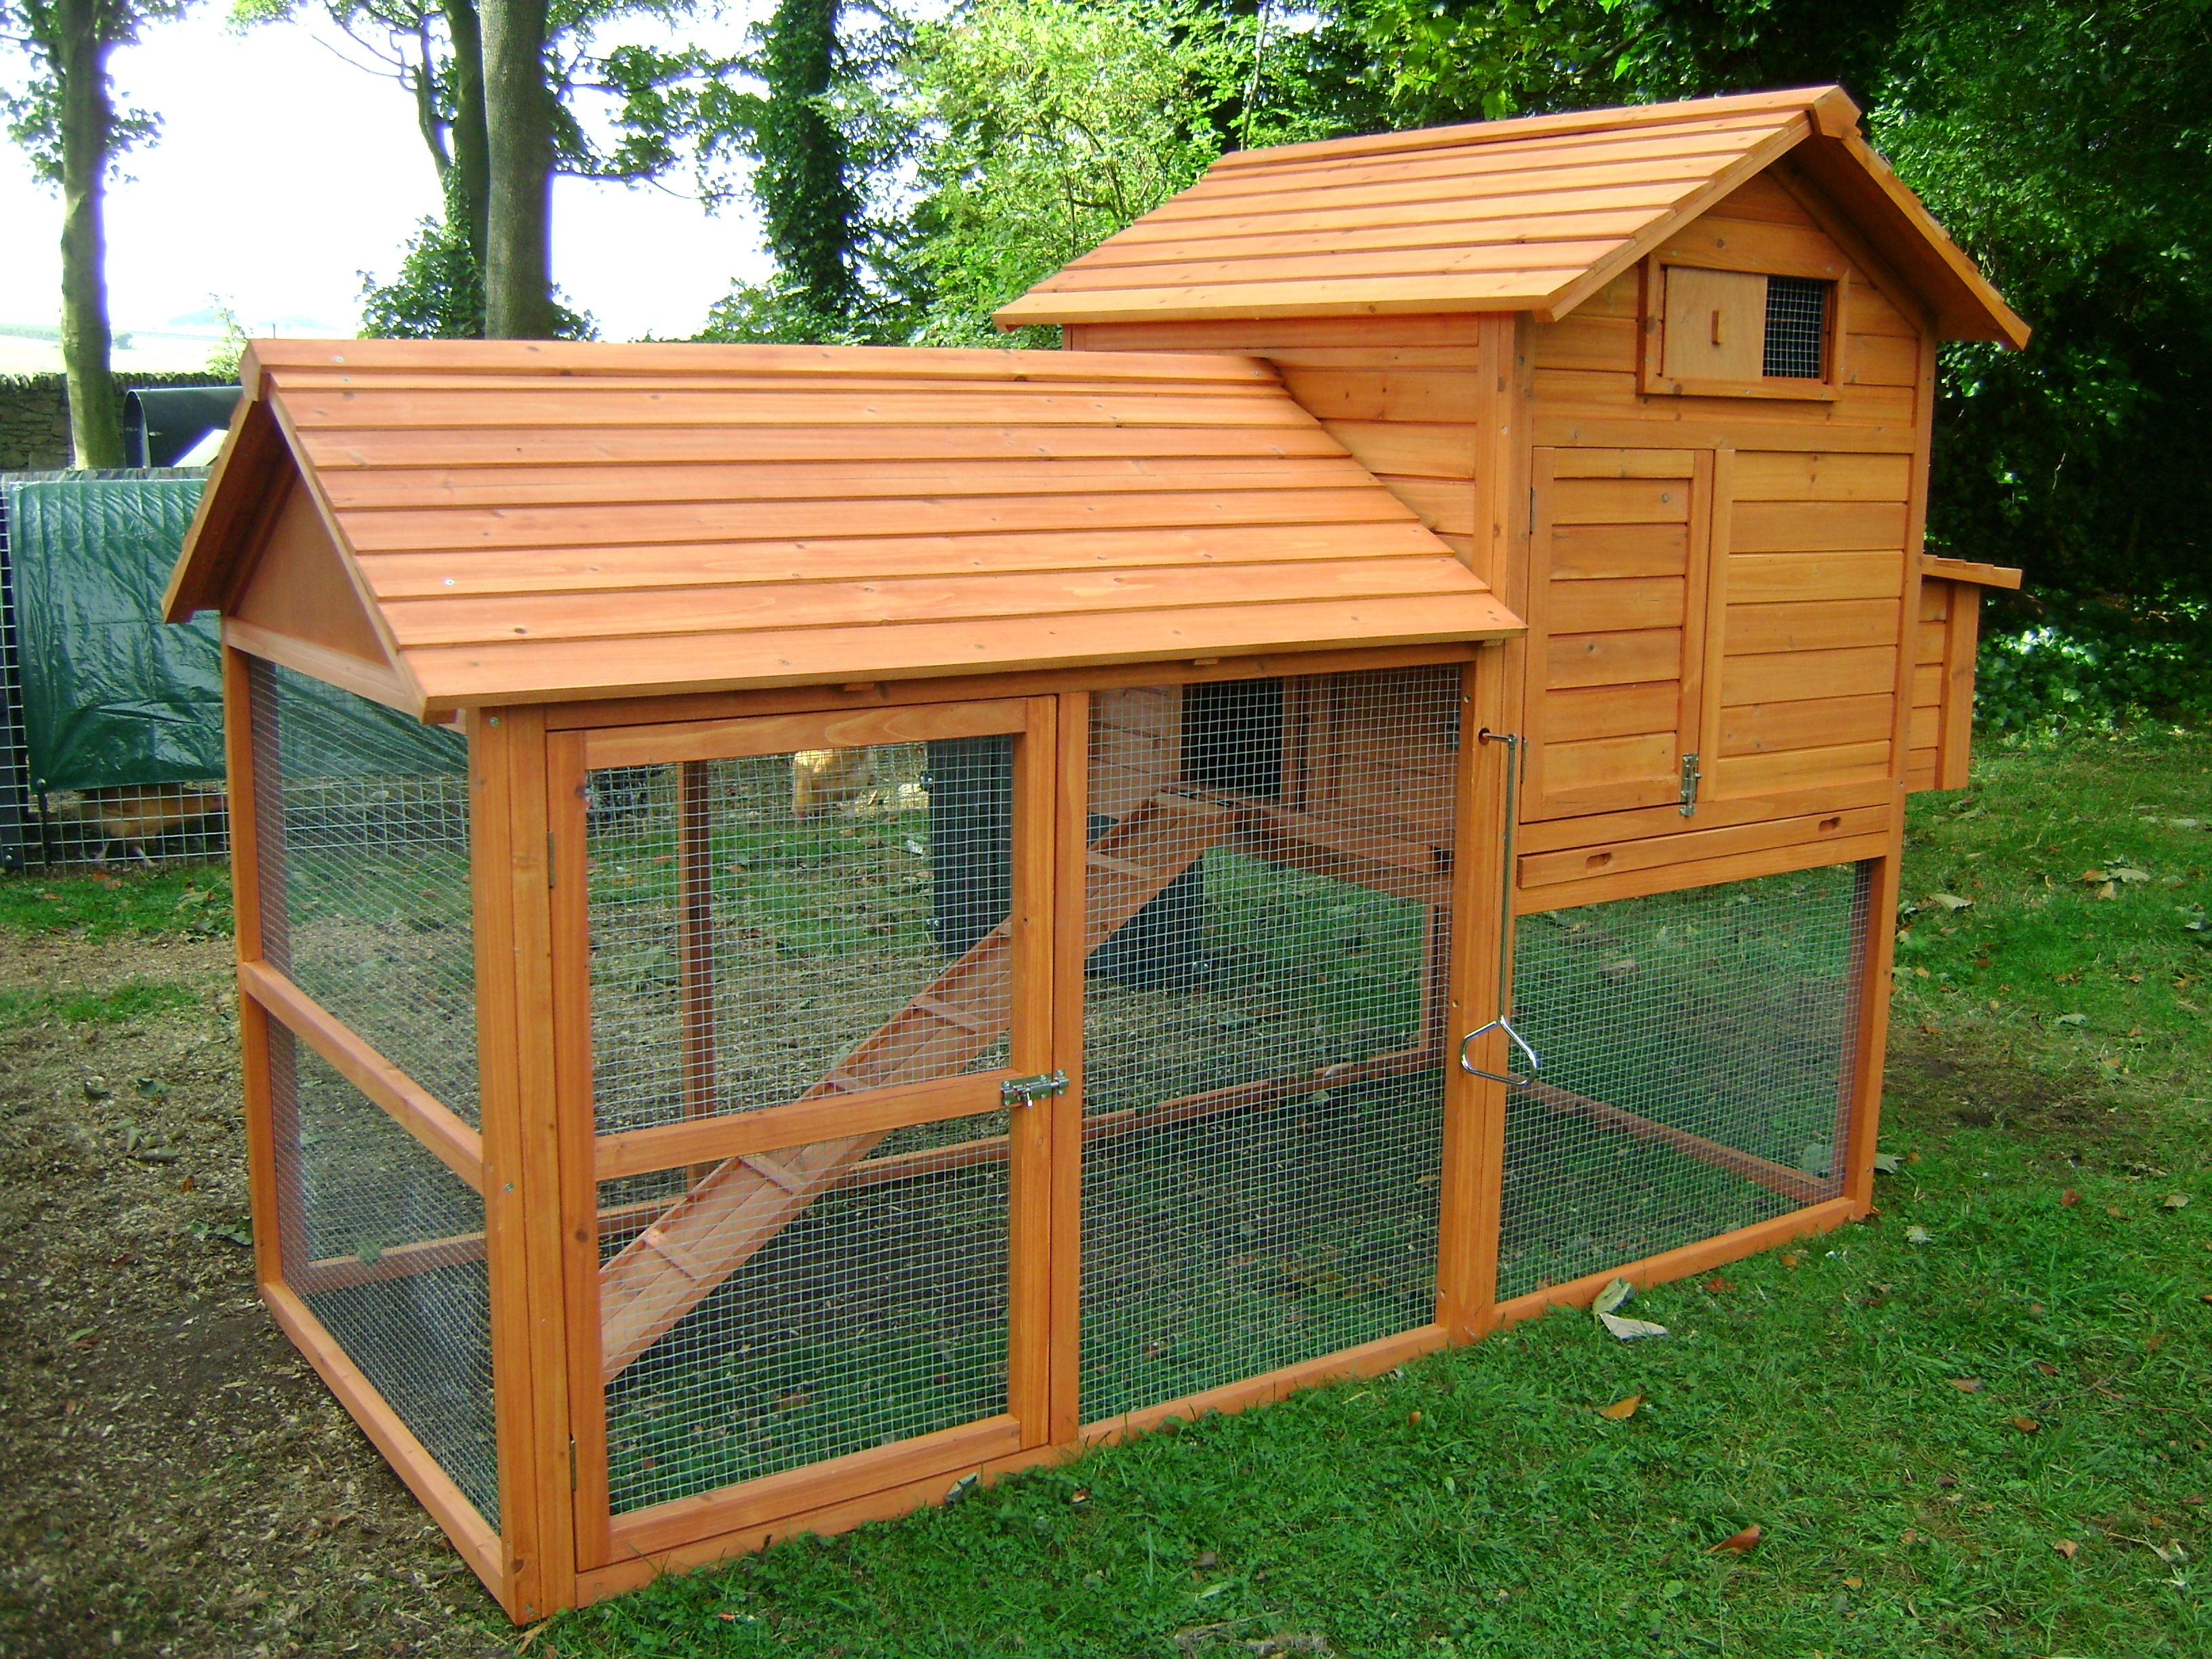 Homestead Plus Hen House Available From Durham Hens Www.durhamhens.co.uk